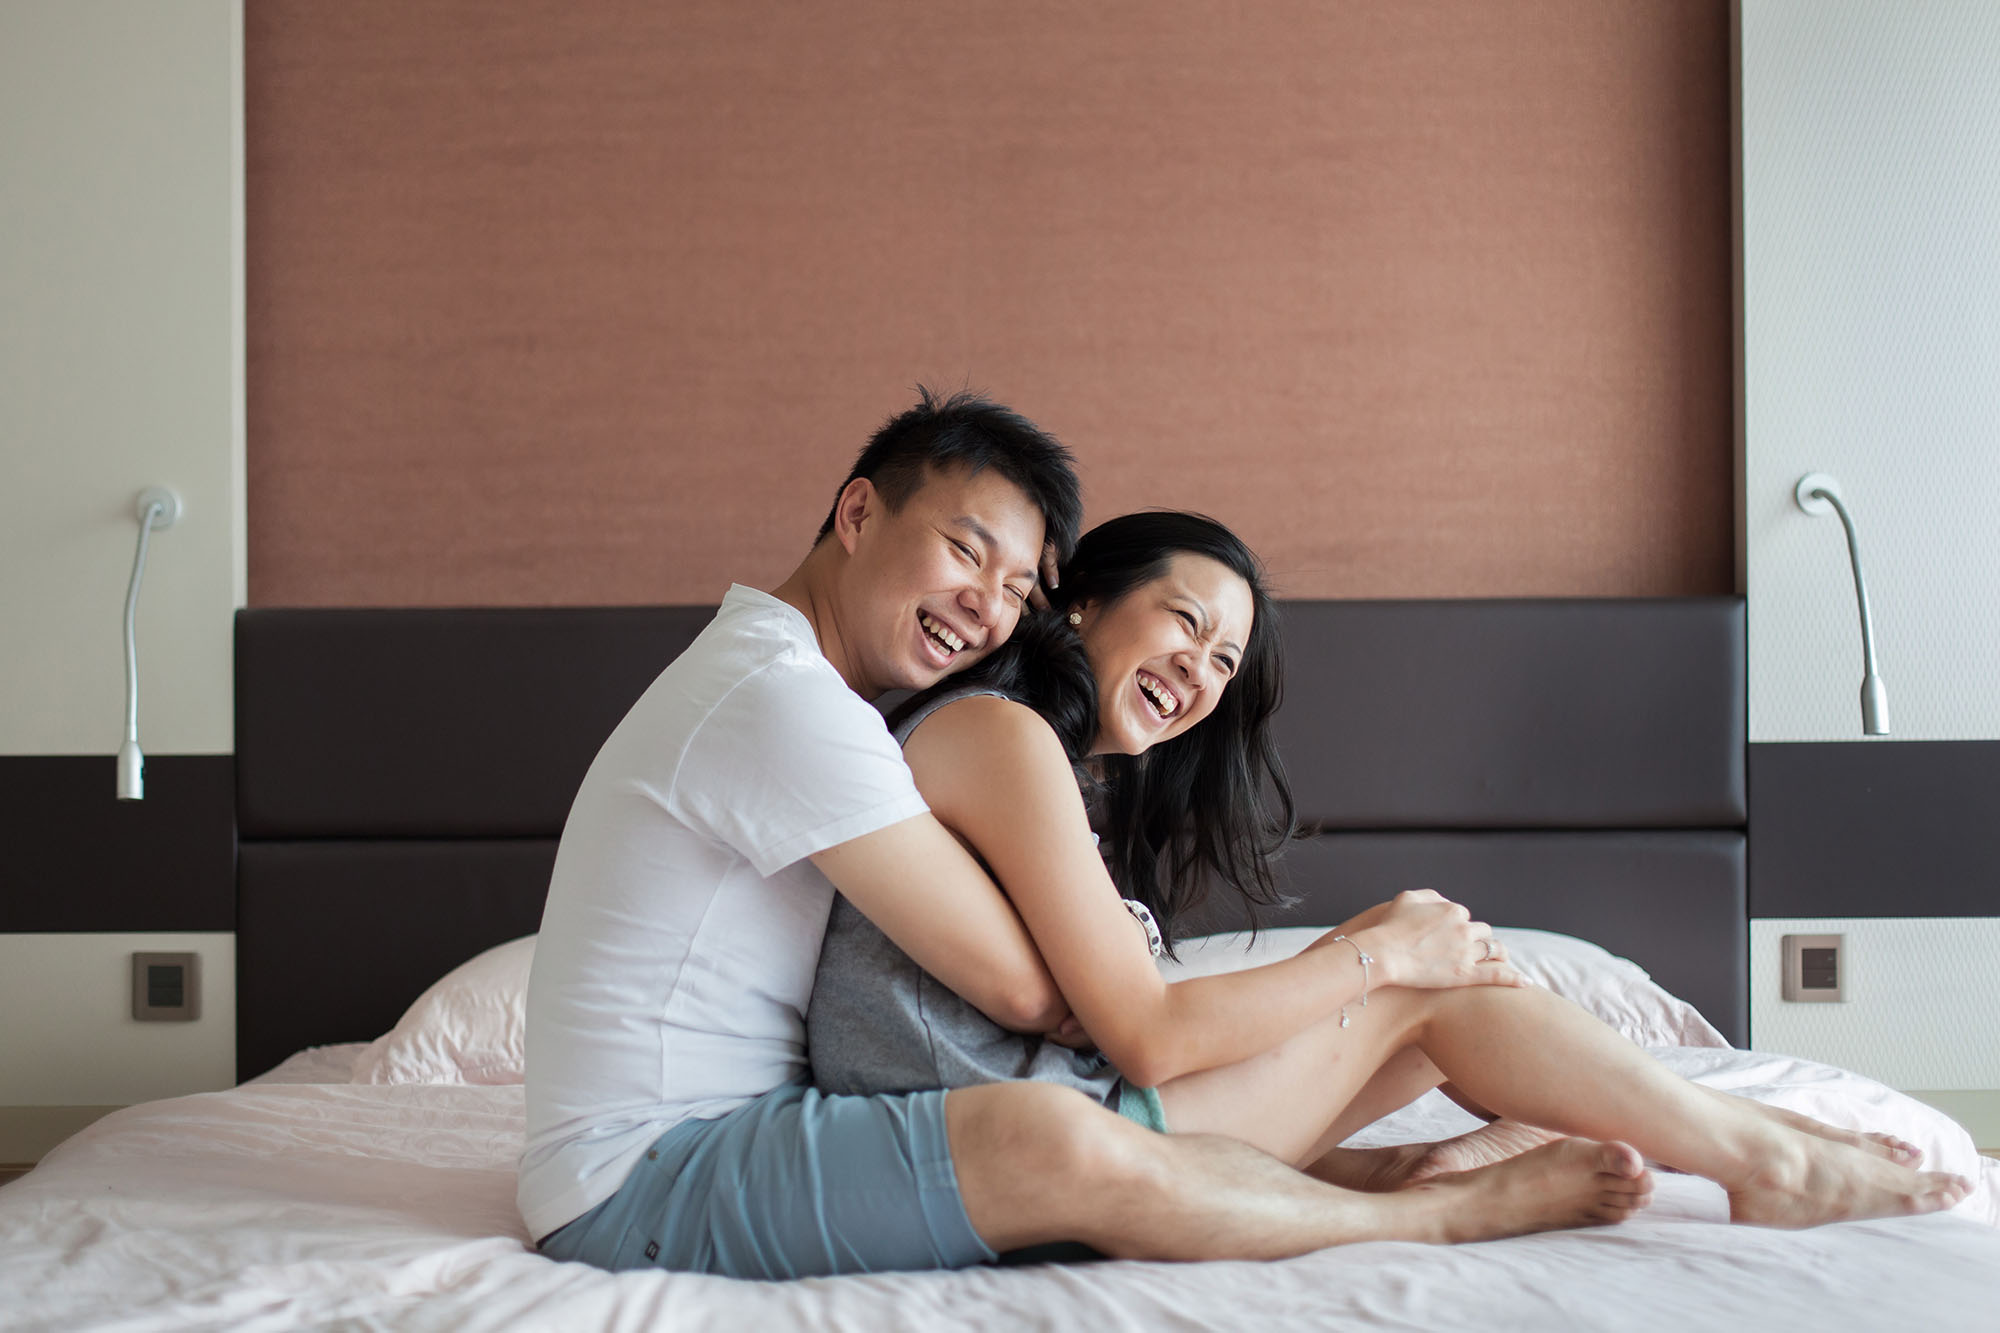 Keeping Your Marriage Strong While Having Kids